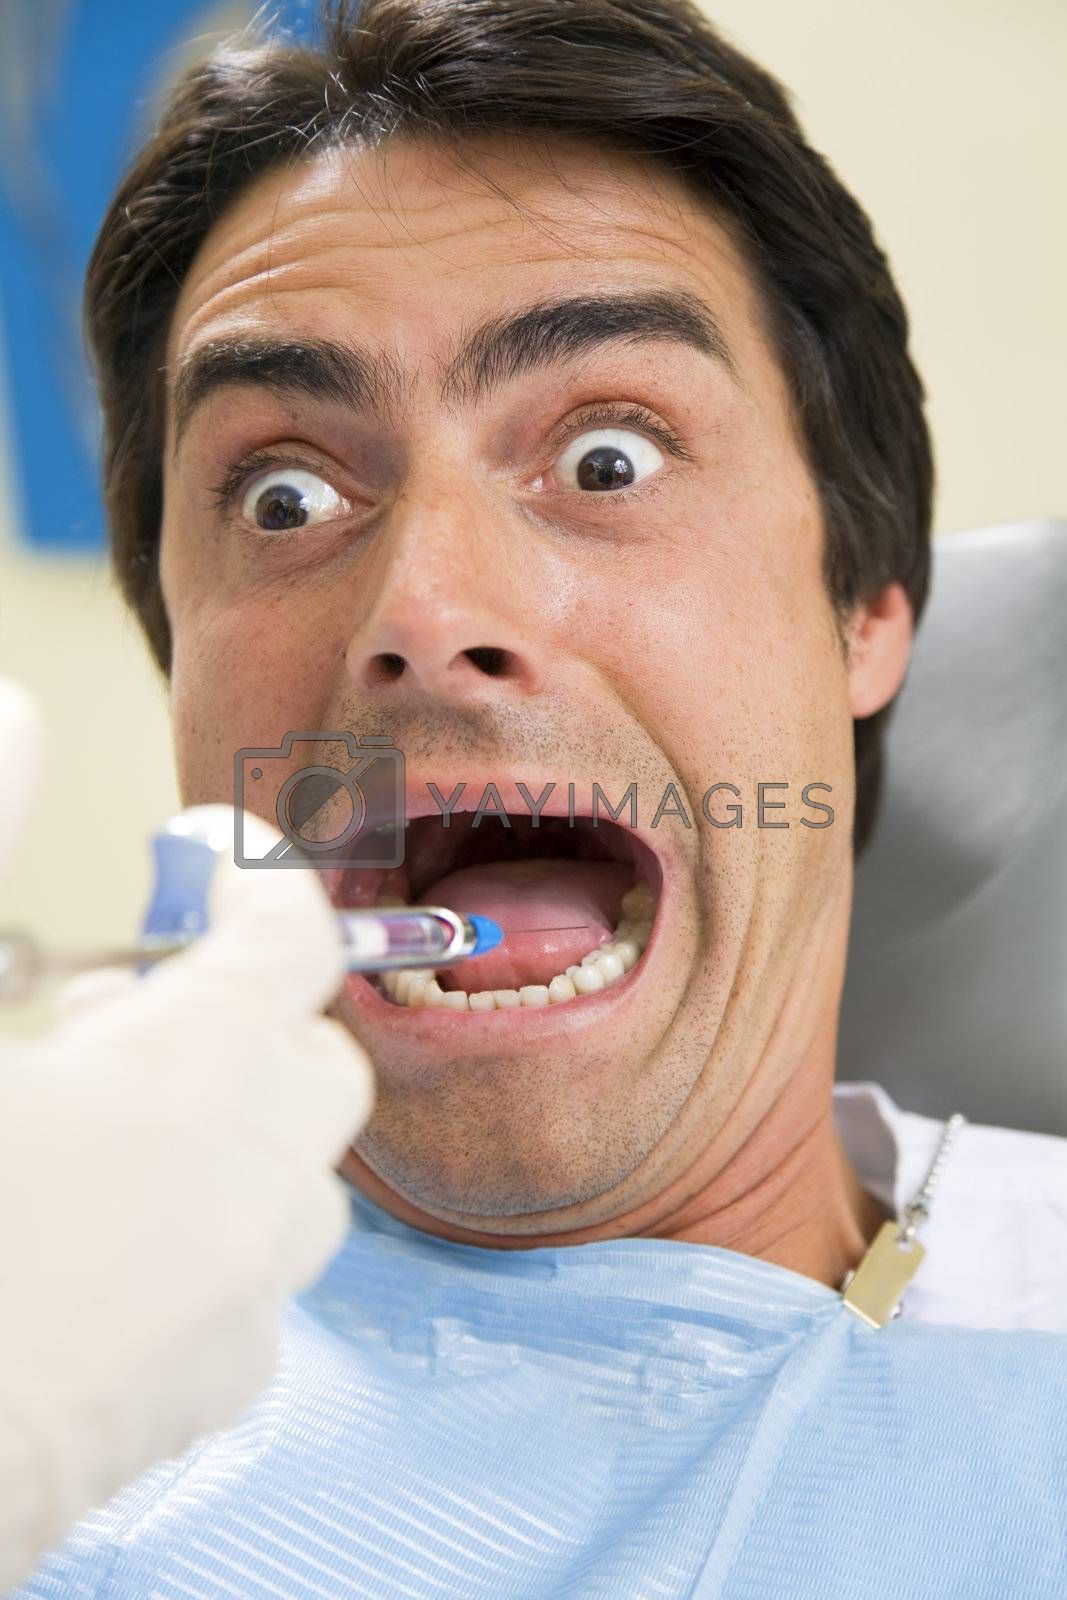 dentist holding a syringe and anesthetizing his terrified patient.